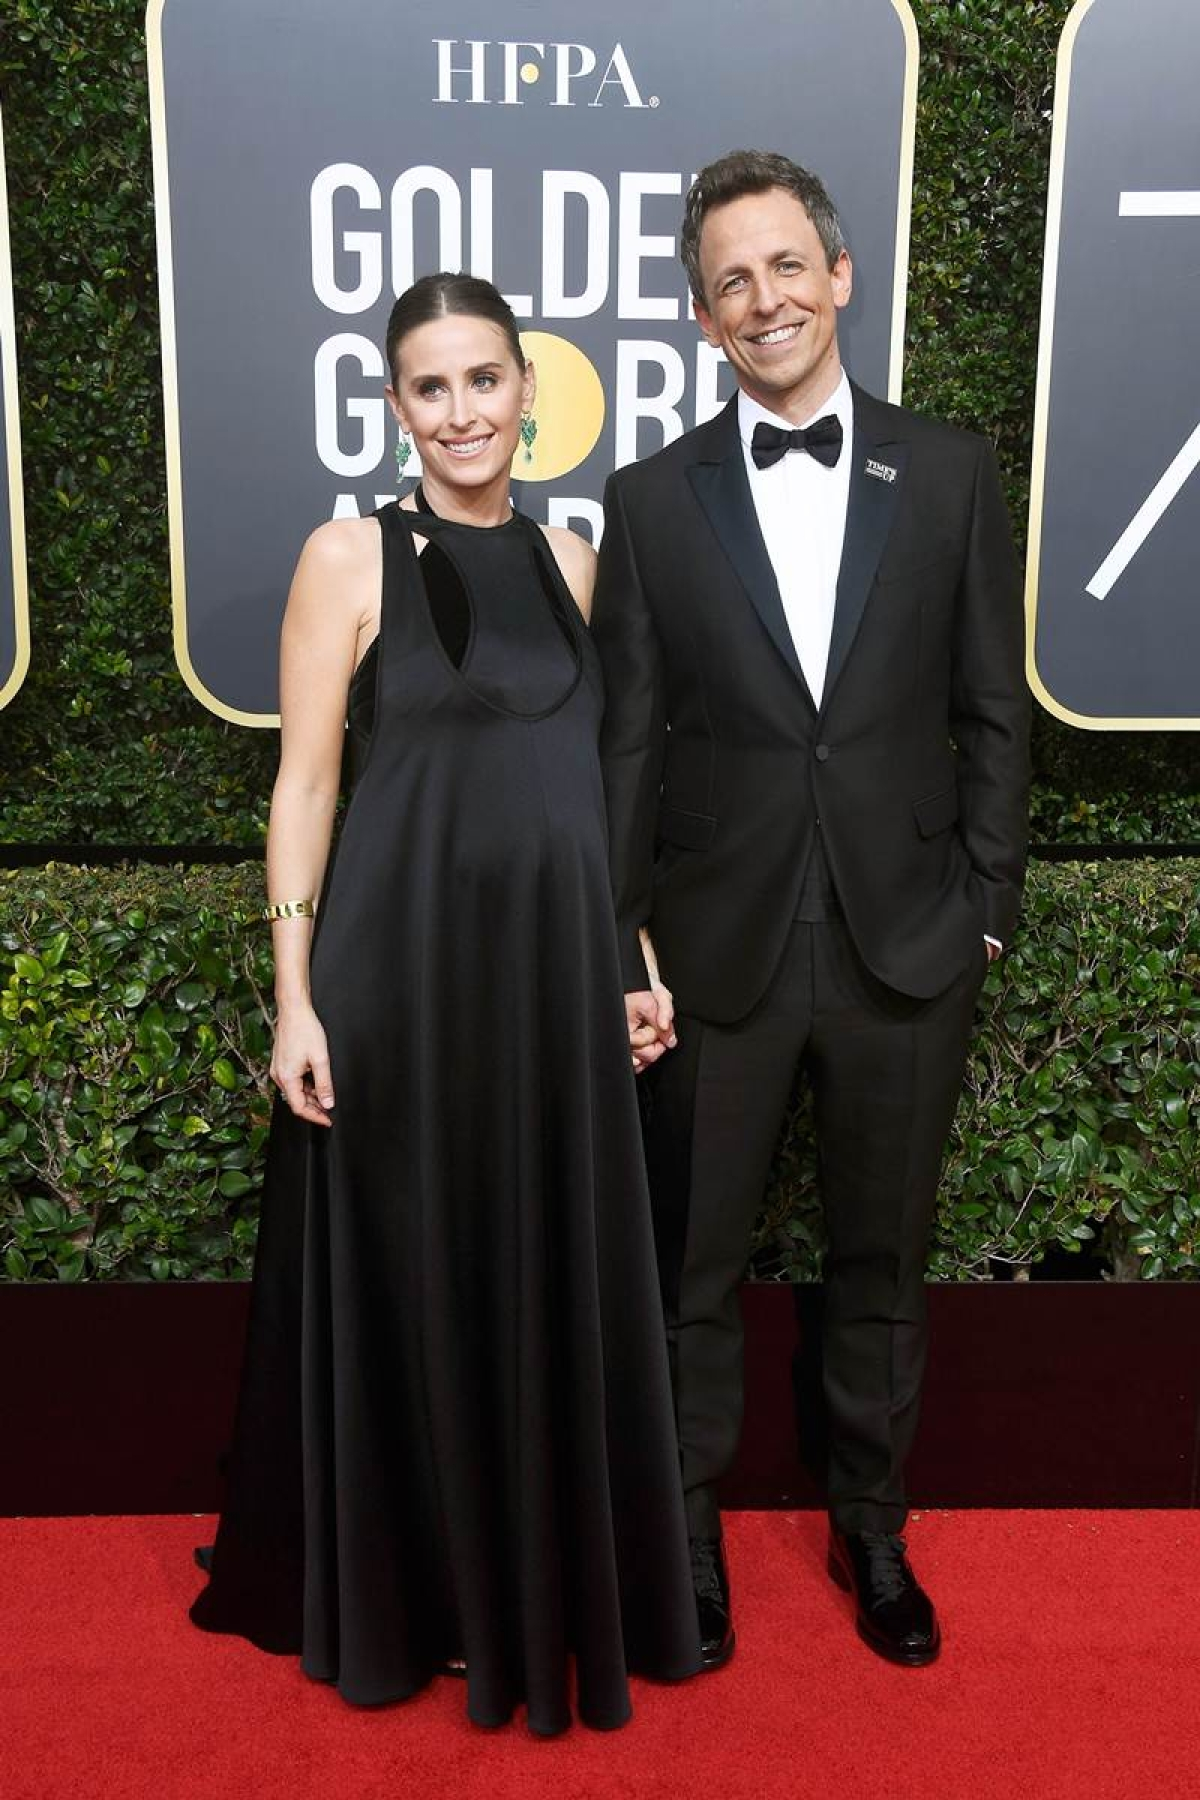 Seth Meyers opens Golden Globe by mocking Trump, tackling sexual harassment scandal